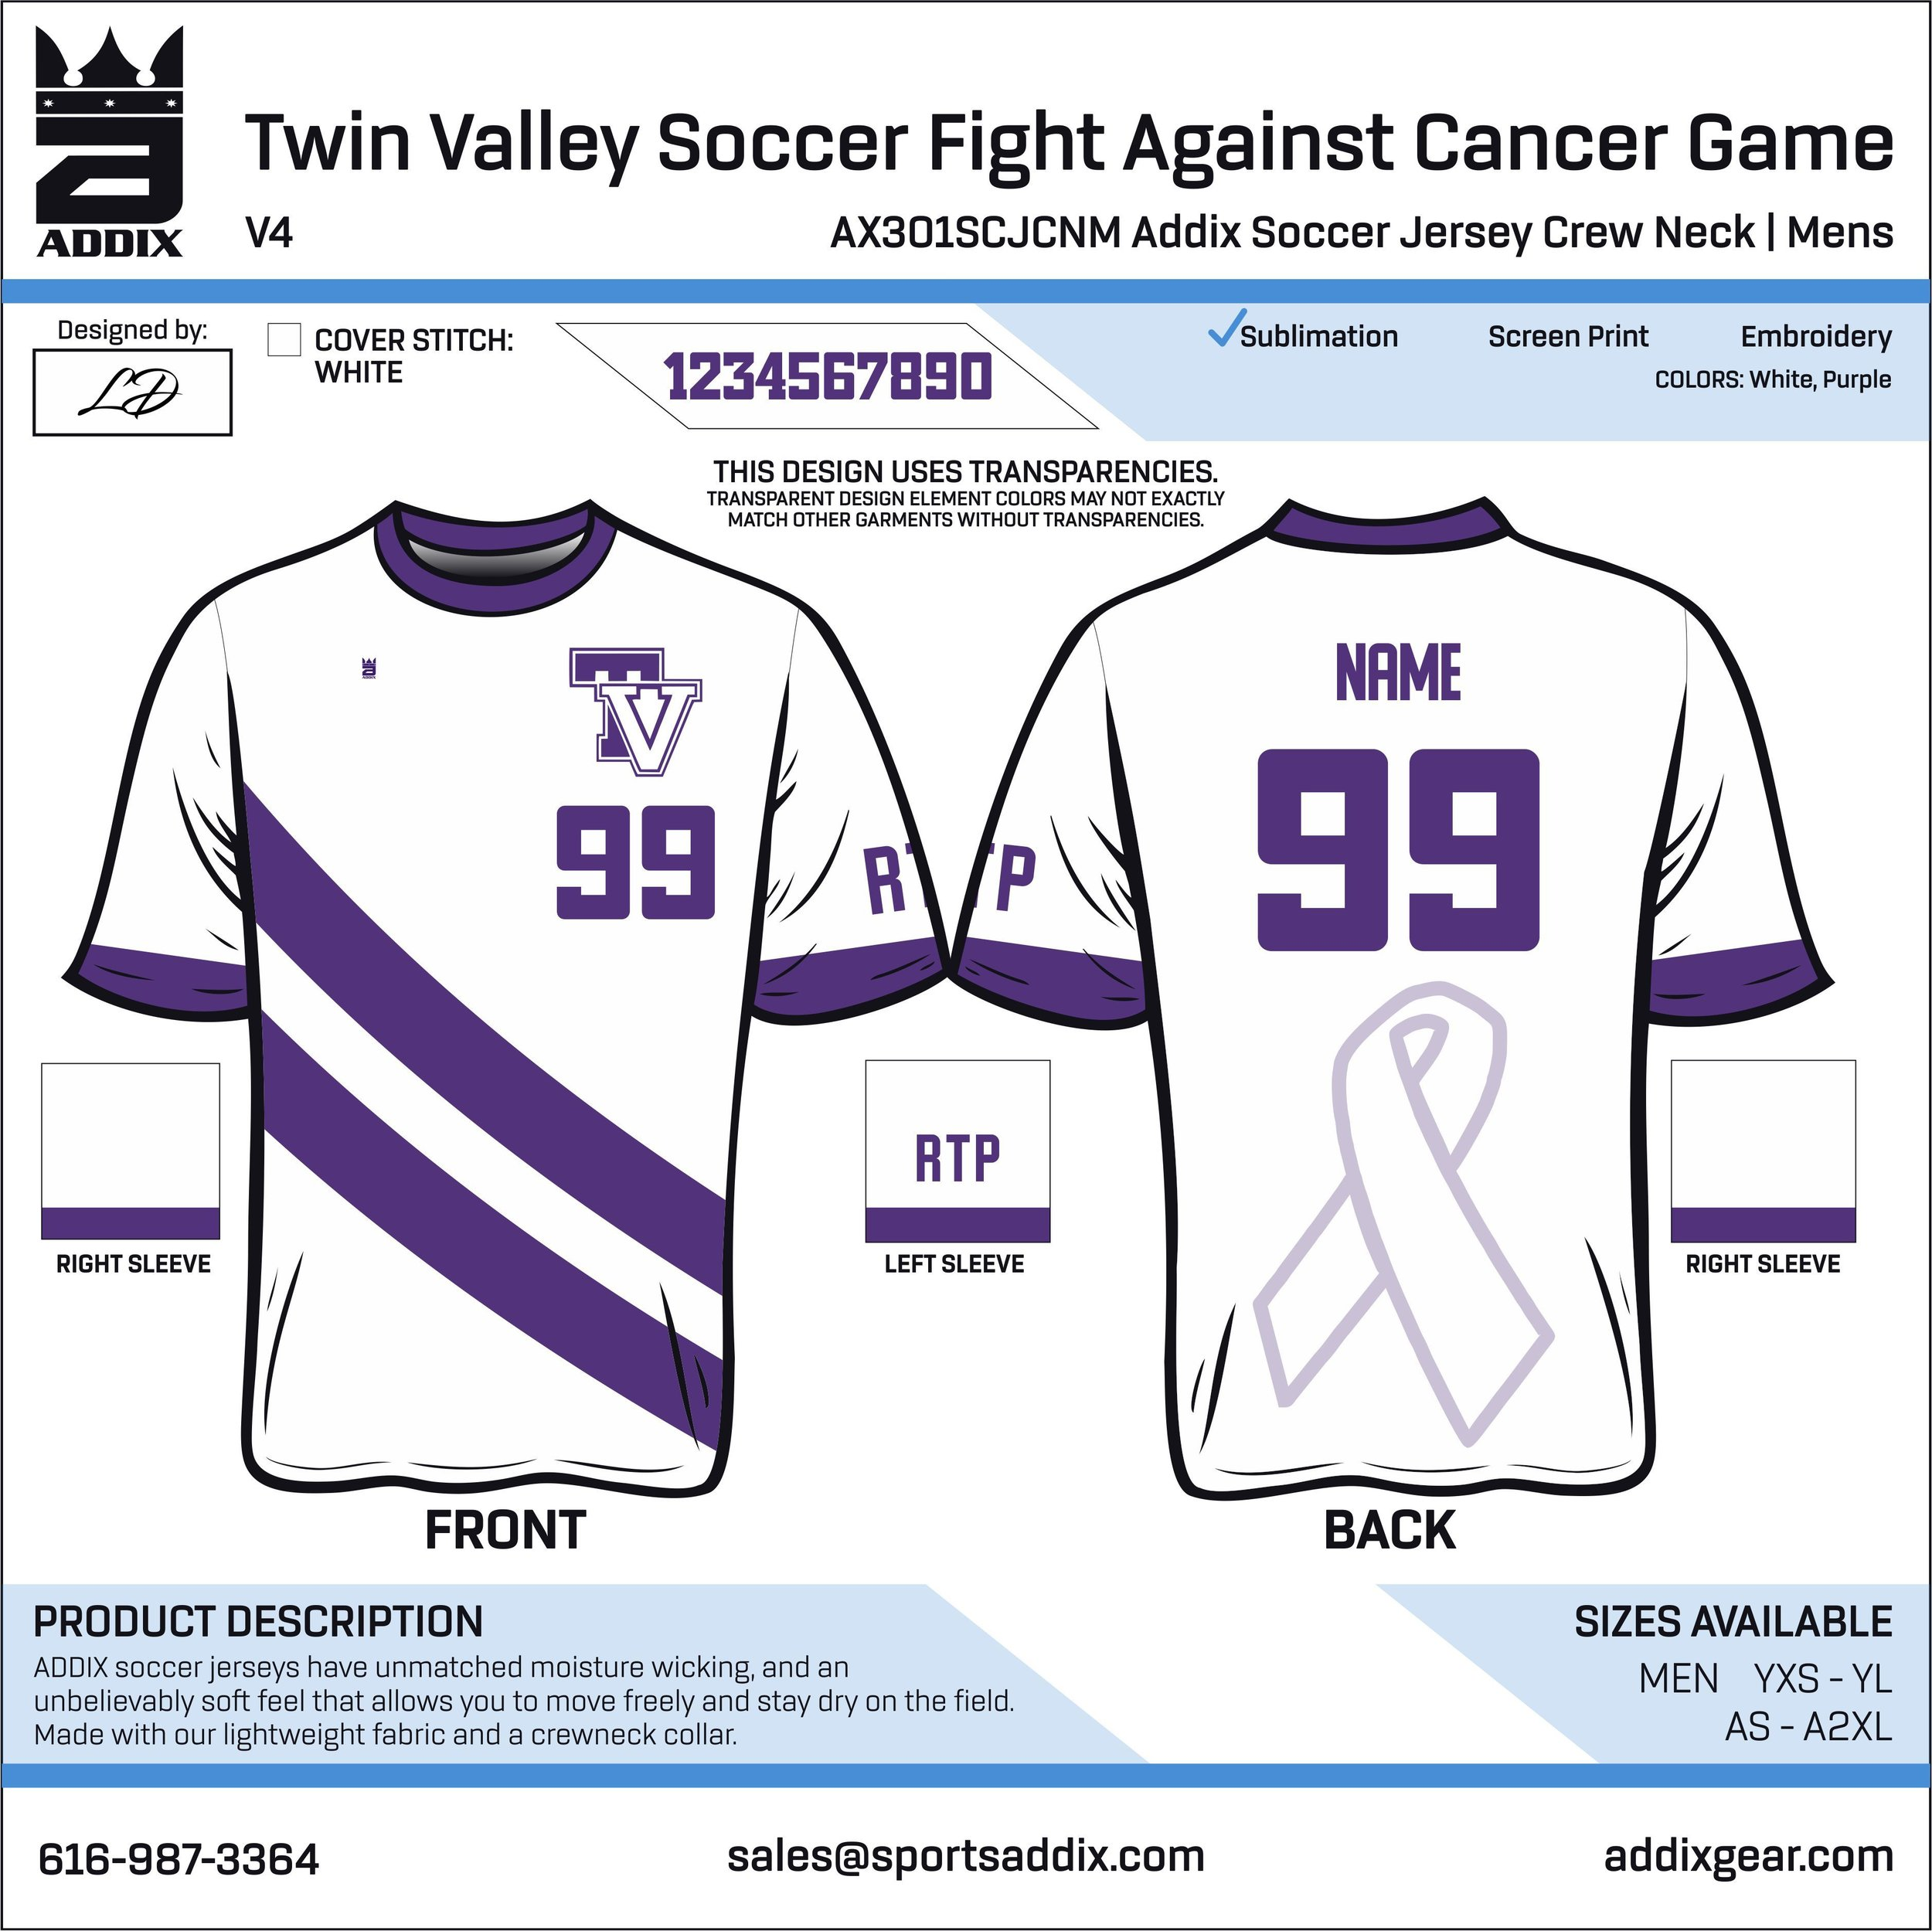 Twin Valley Soccer Fight Against Cancer Game_2019_8-28_LD_soccer jersey crewneck_4.jpg